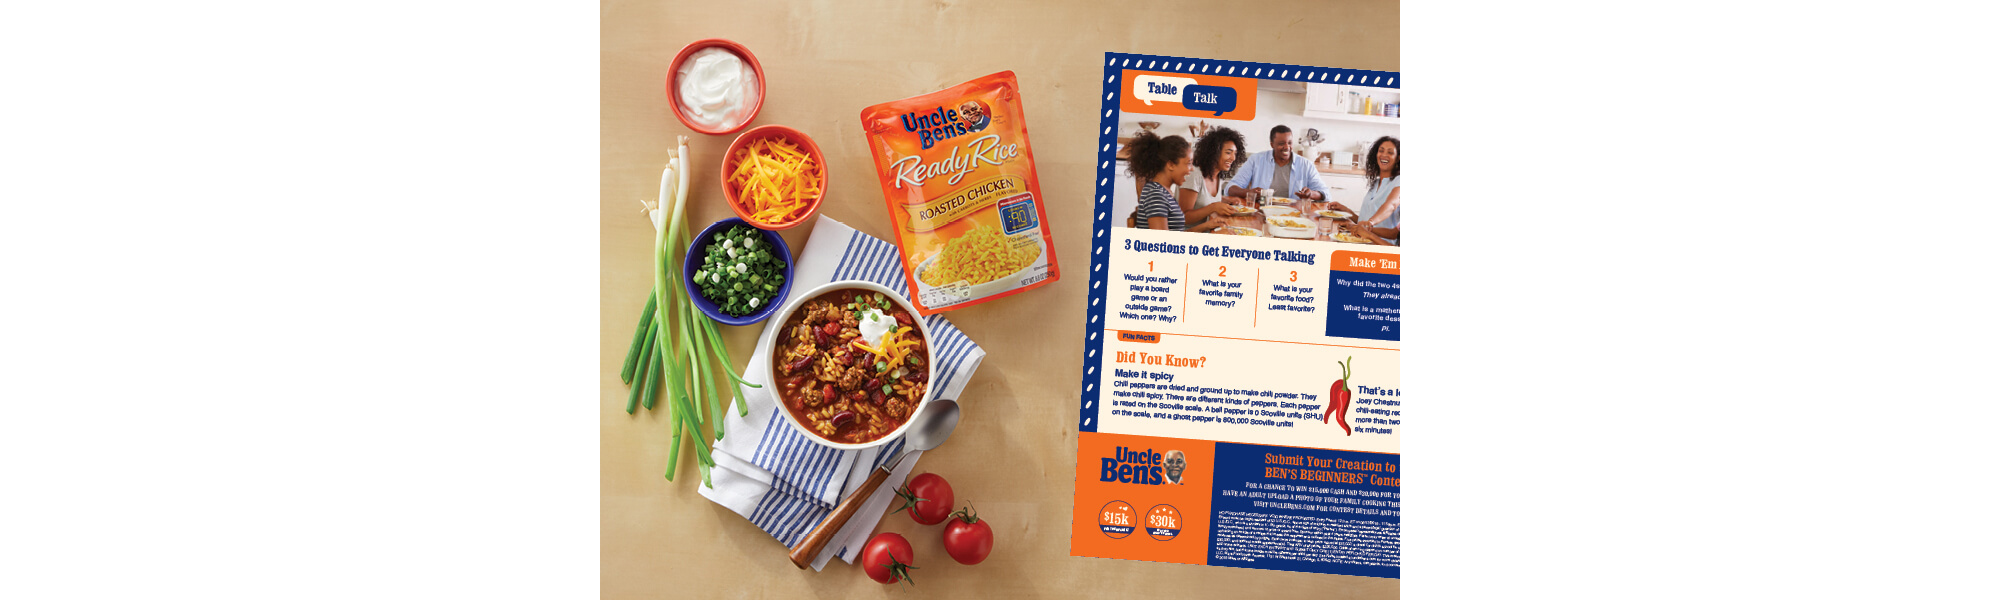 Uncle Ben's Cooking Guides, Image 4